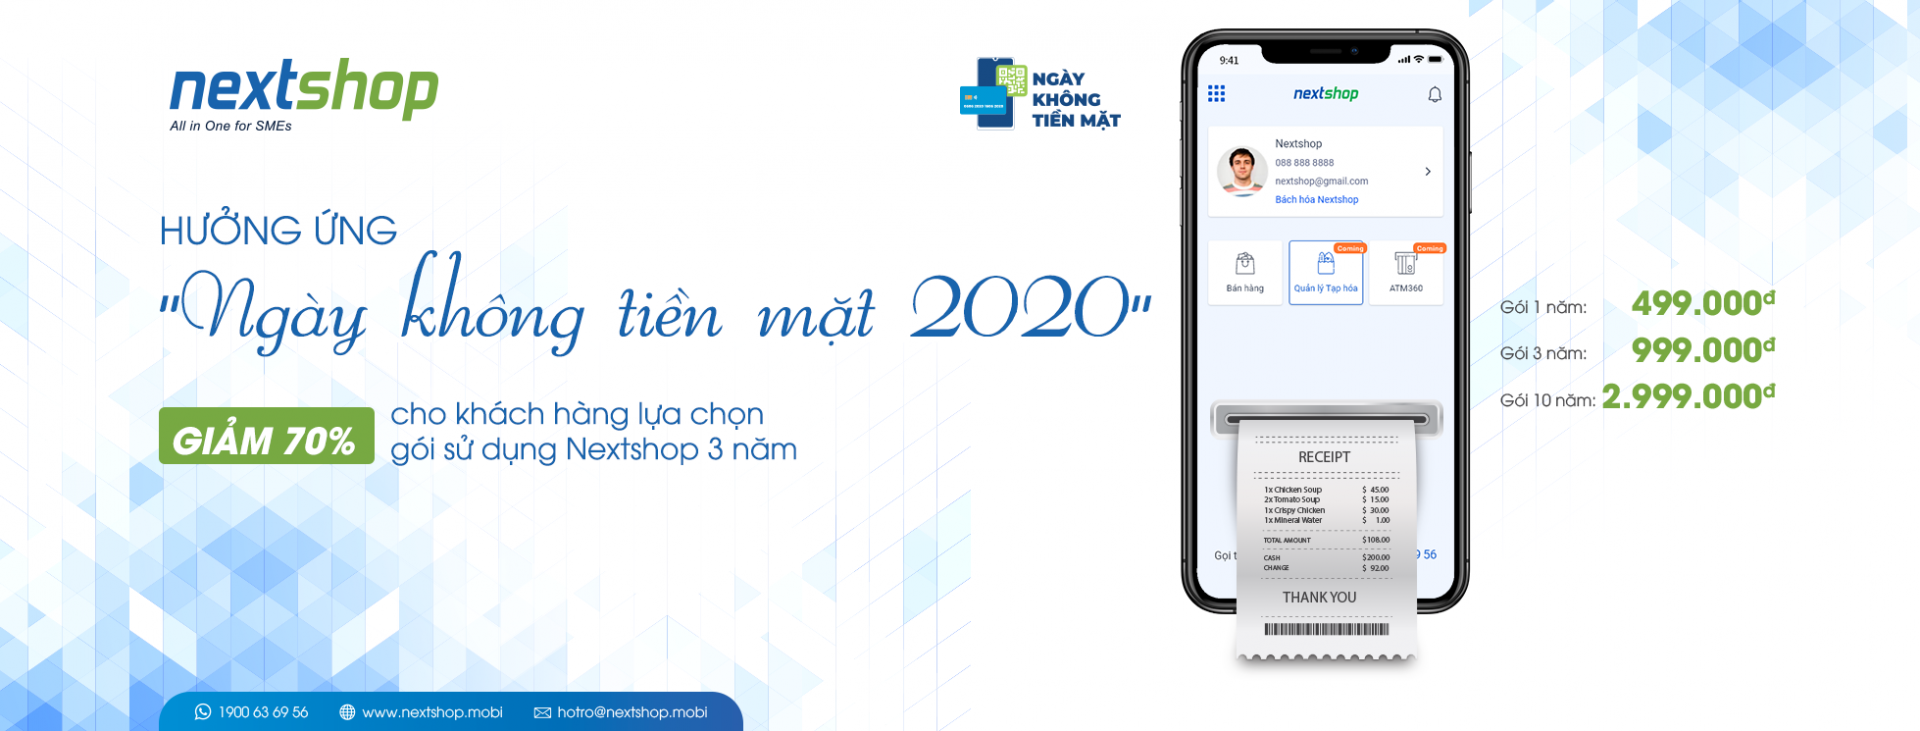 visa supports cashless day in joint effort to promote non cash payments in vietnam